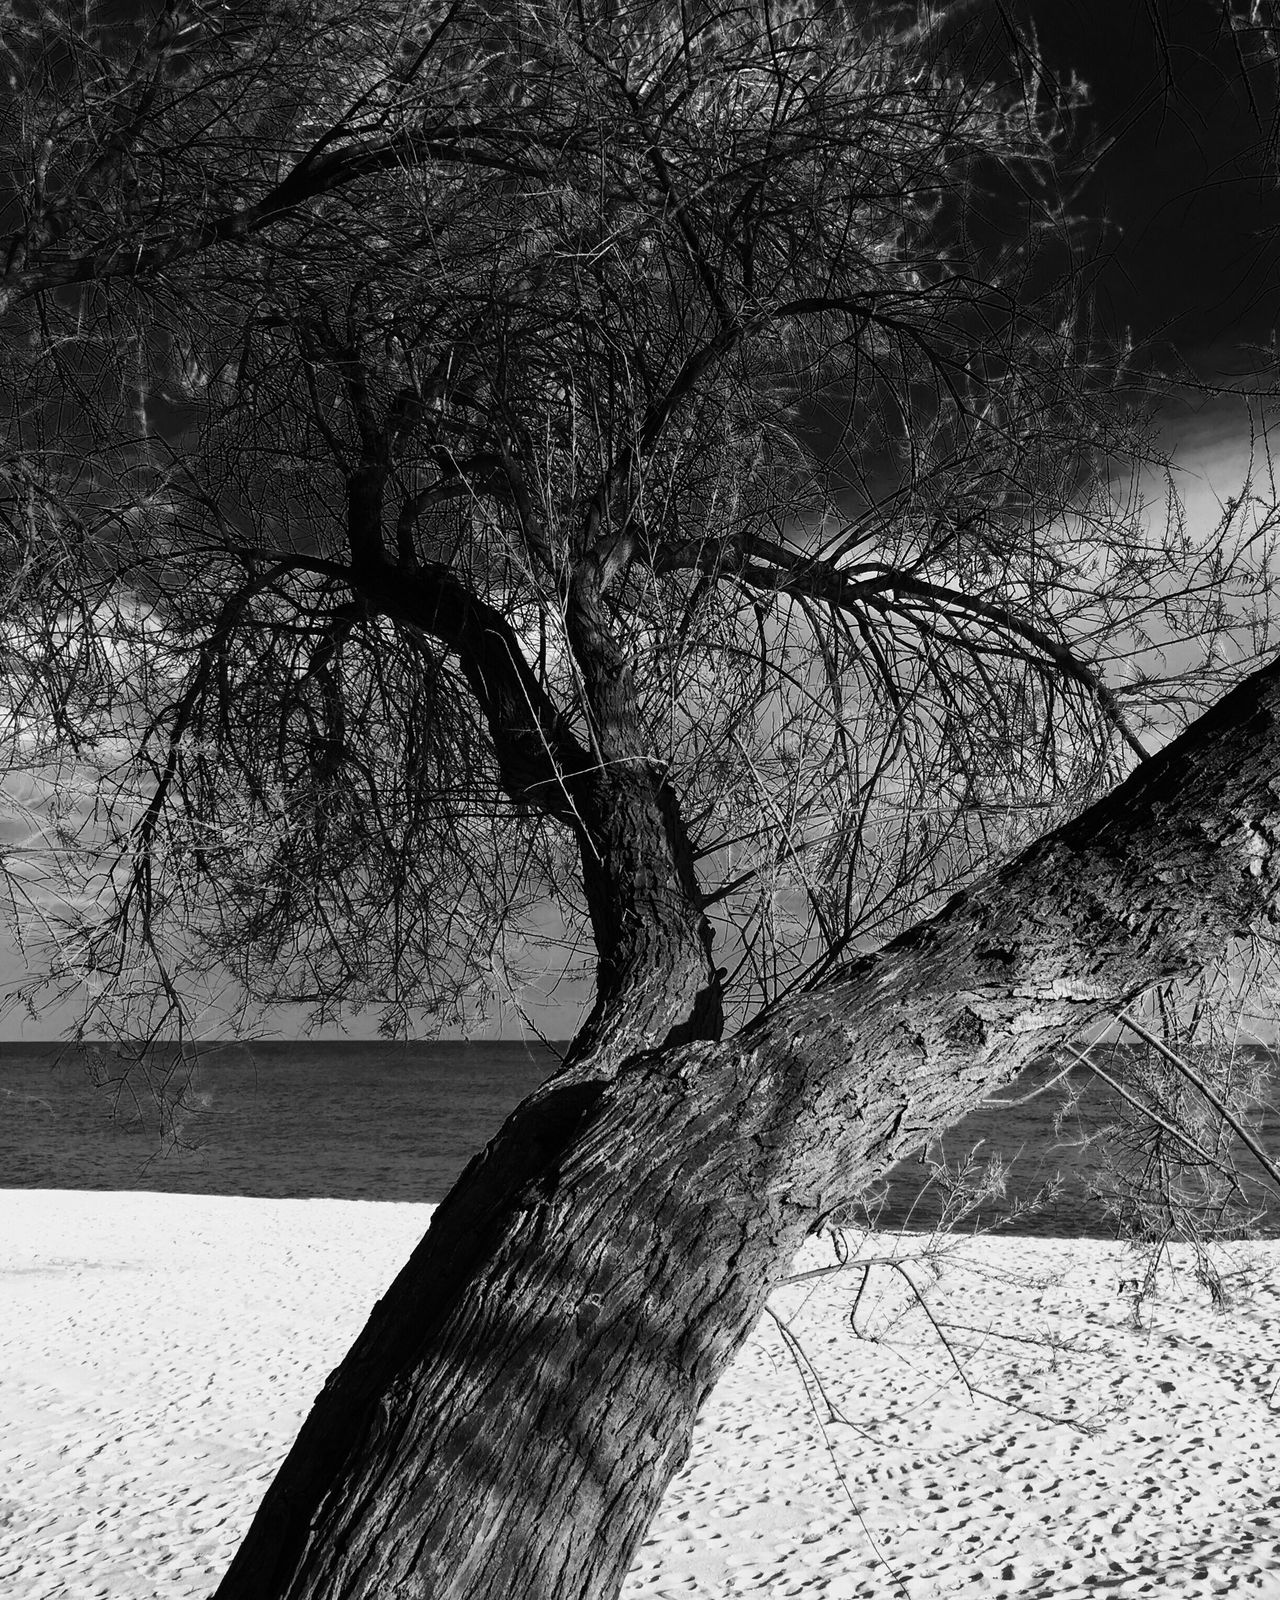 Tree Tree Trunk Landscape Beach Beachphotography Nature Nature_collection Nature Photography IPhoneography Iphoneonly Blackandwhite Black And White EyeEm Best Shots - Black + White Black & White Blackandwhite Photography Bw_collection EyeEm Gallery Eye4photography  EyeEm Nature Lover EyeEm Bnw